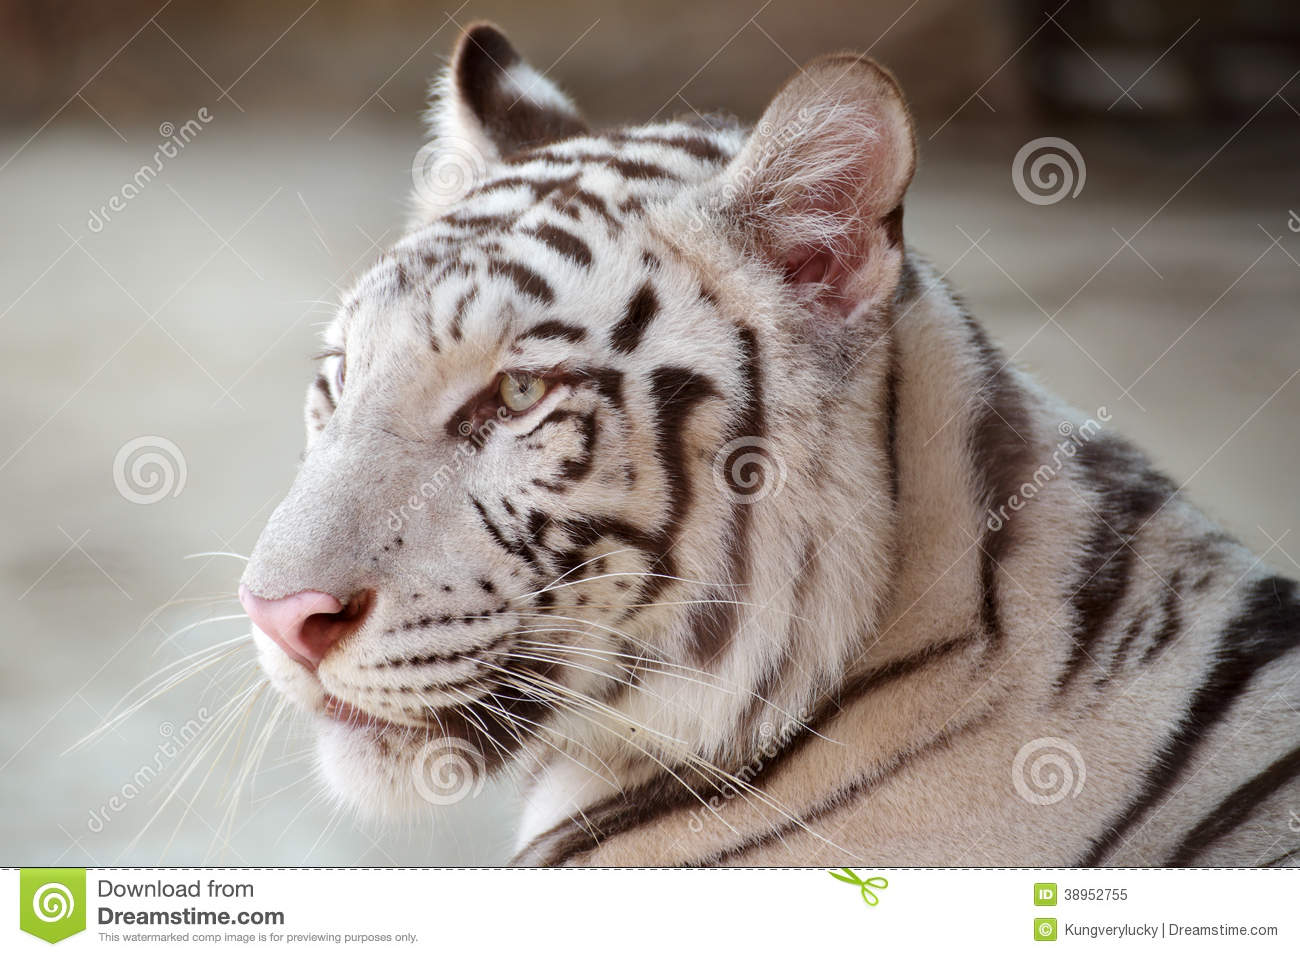 White tiger close up face - photo#23